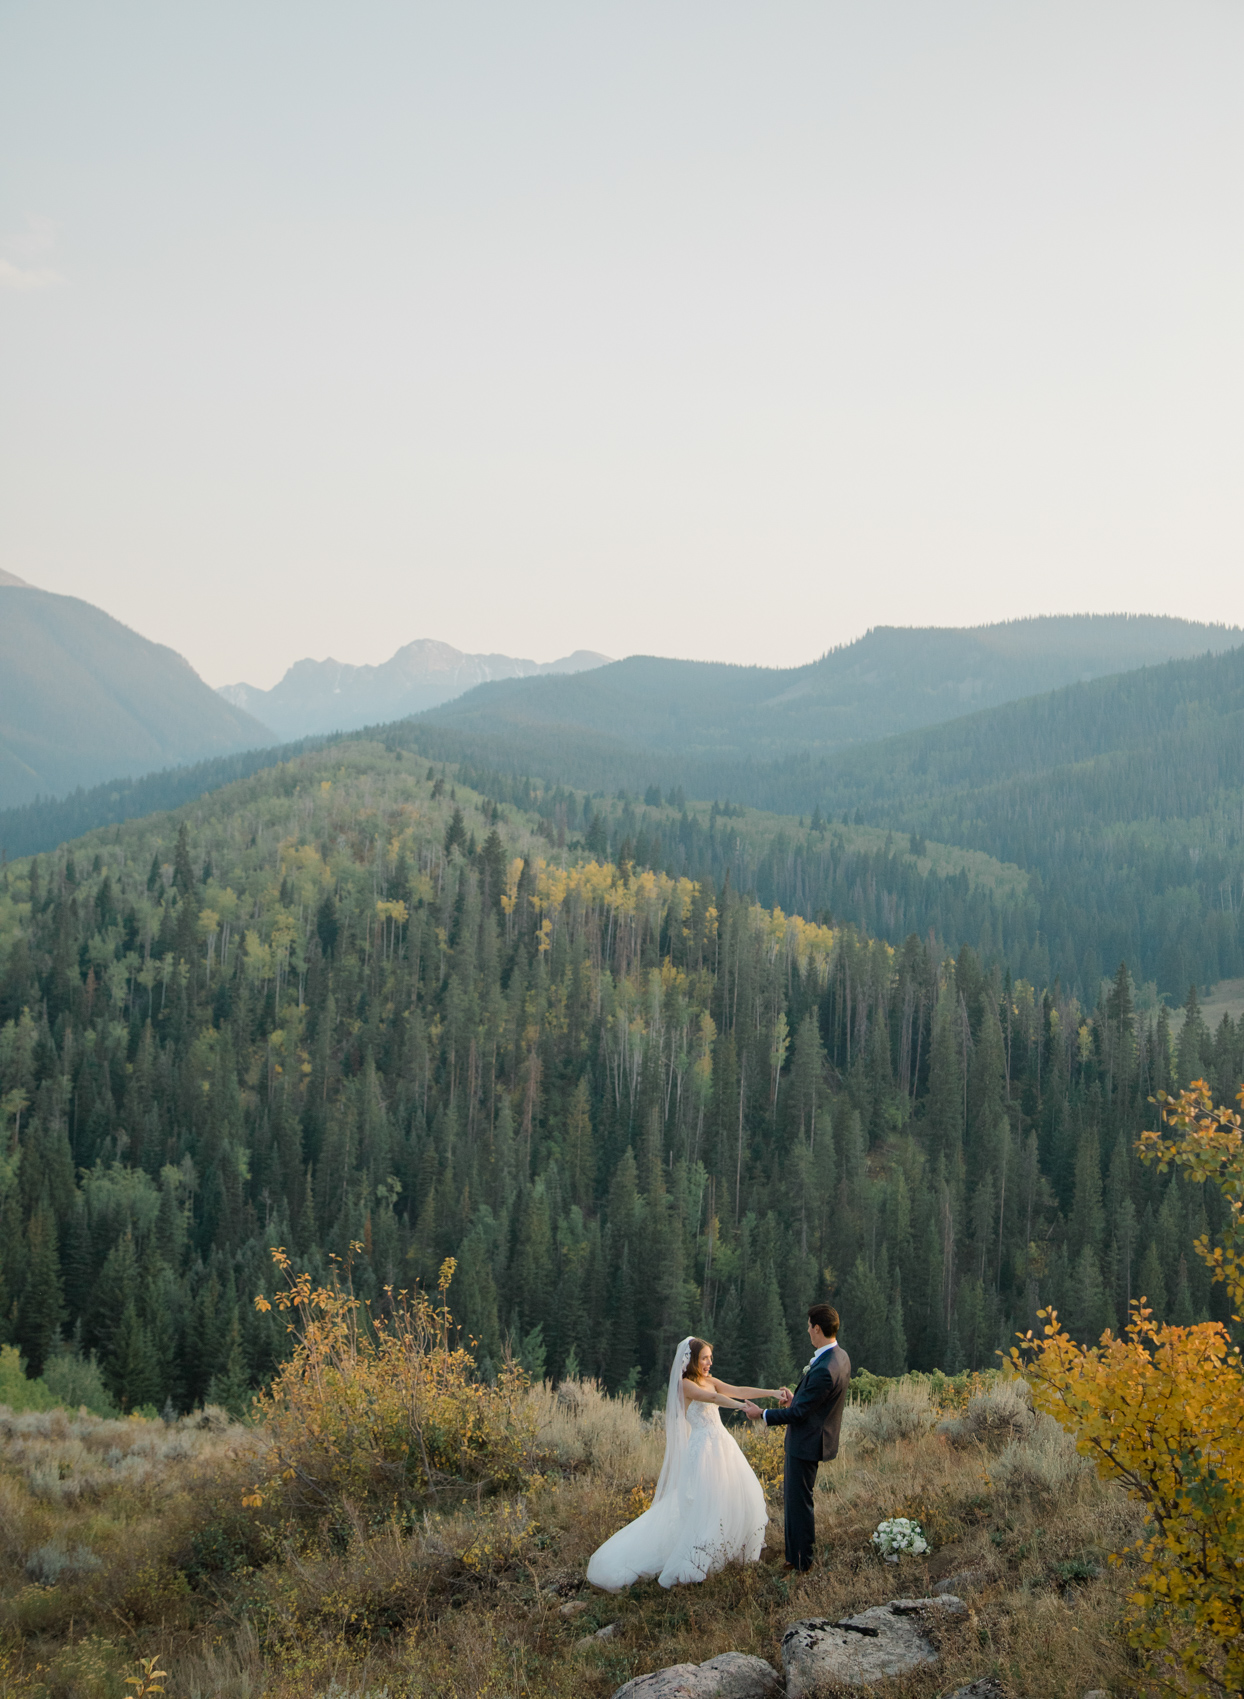 mountain landscape with bride and groom